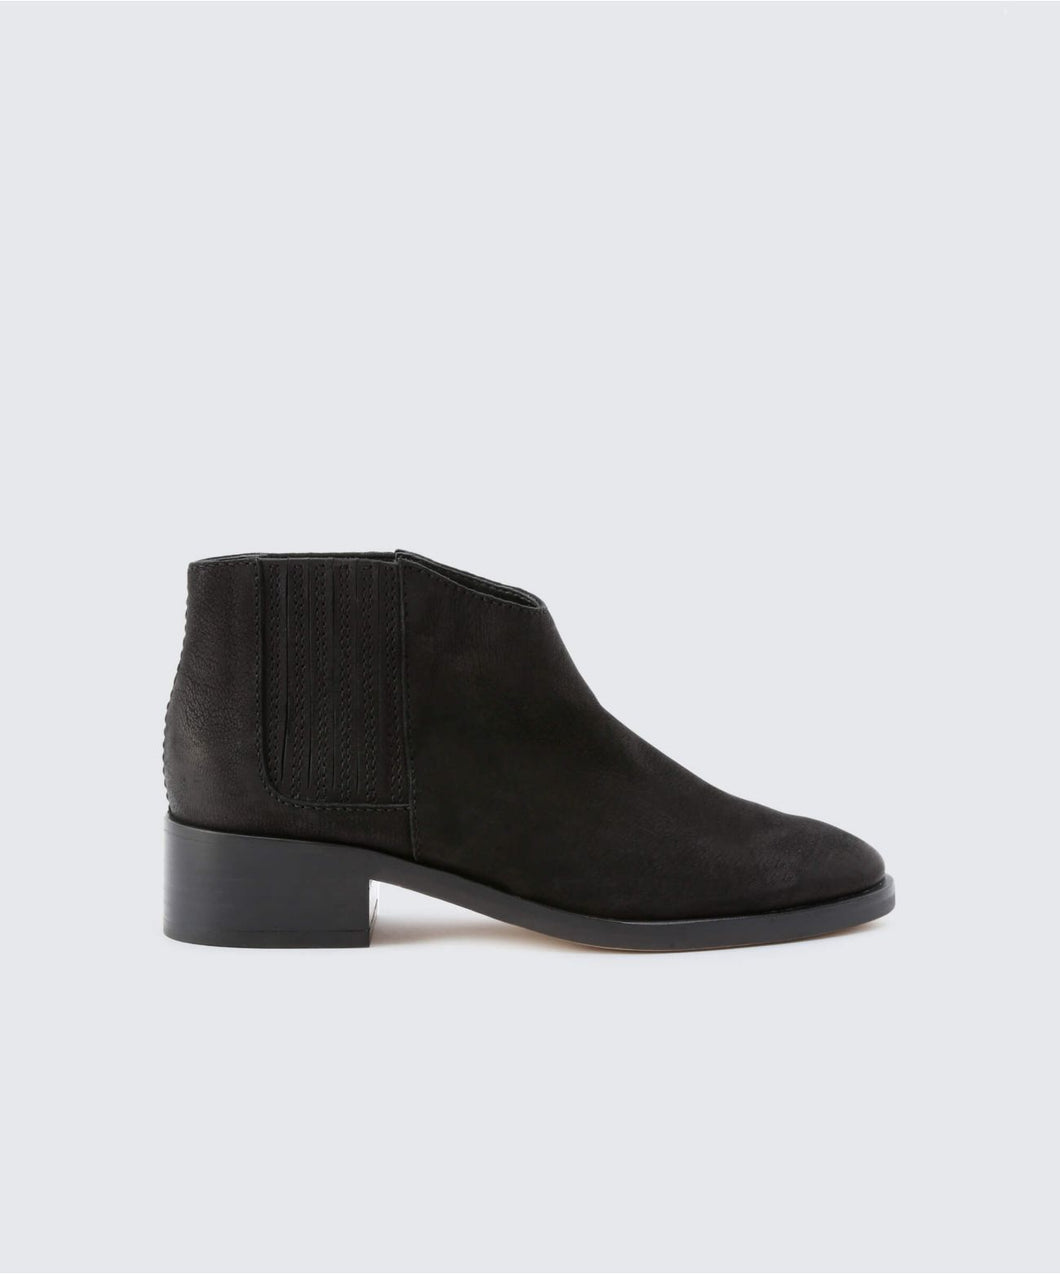 TOWNE BOOTIES ONYX -   Dolce Vita